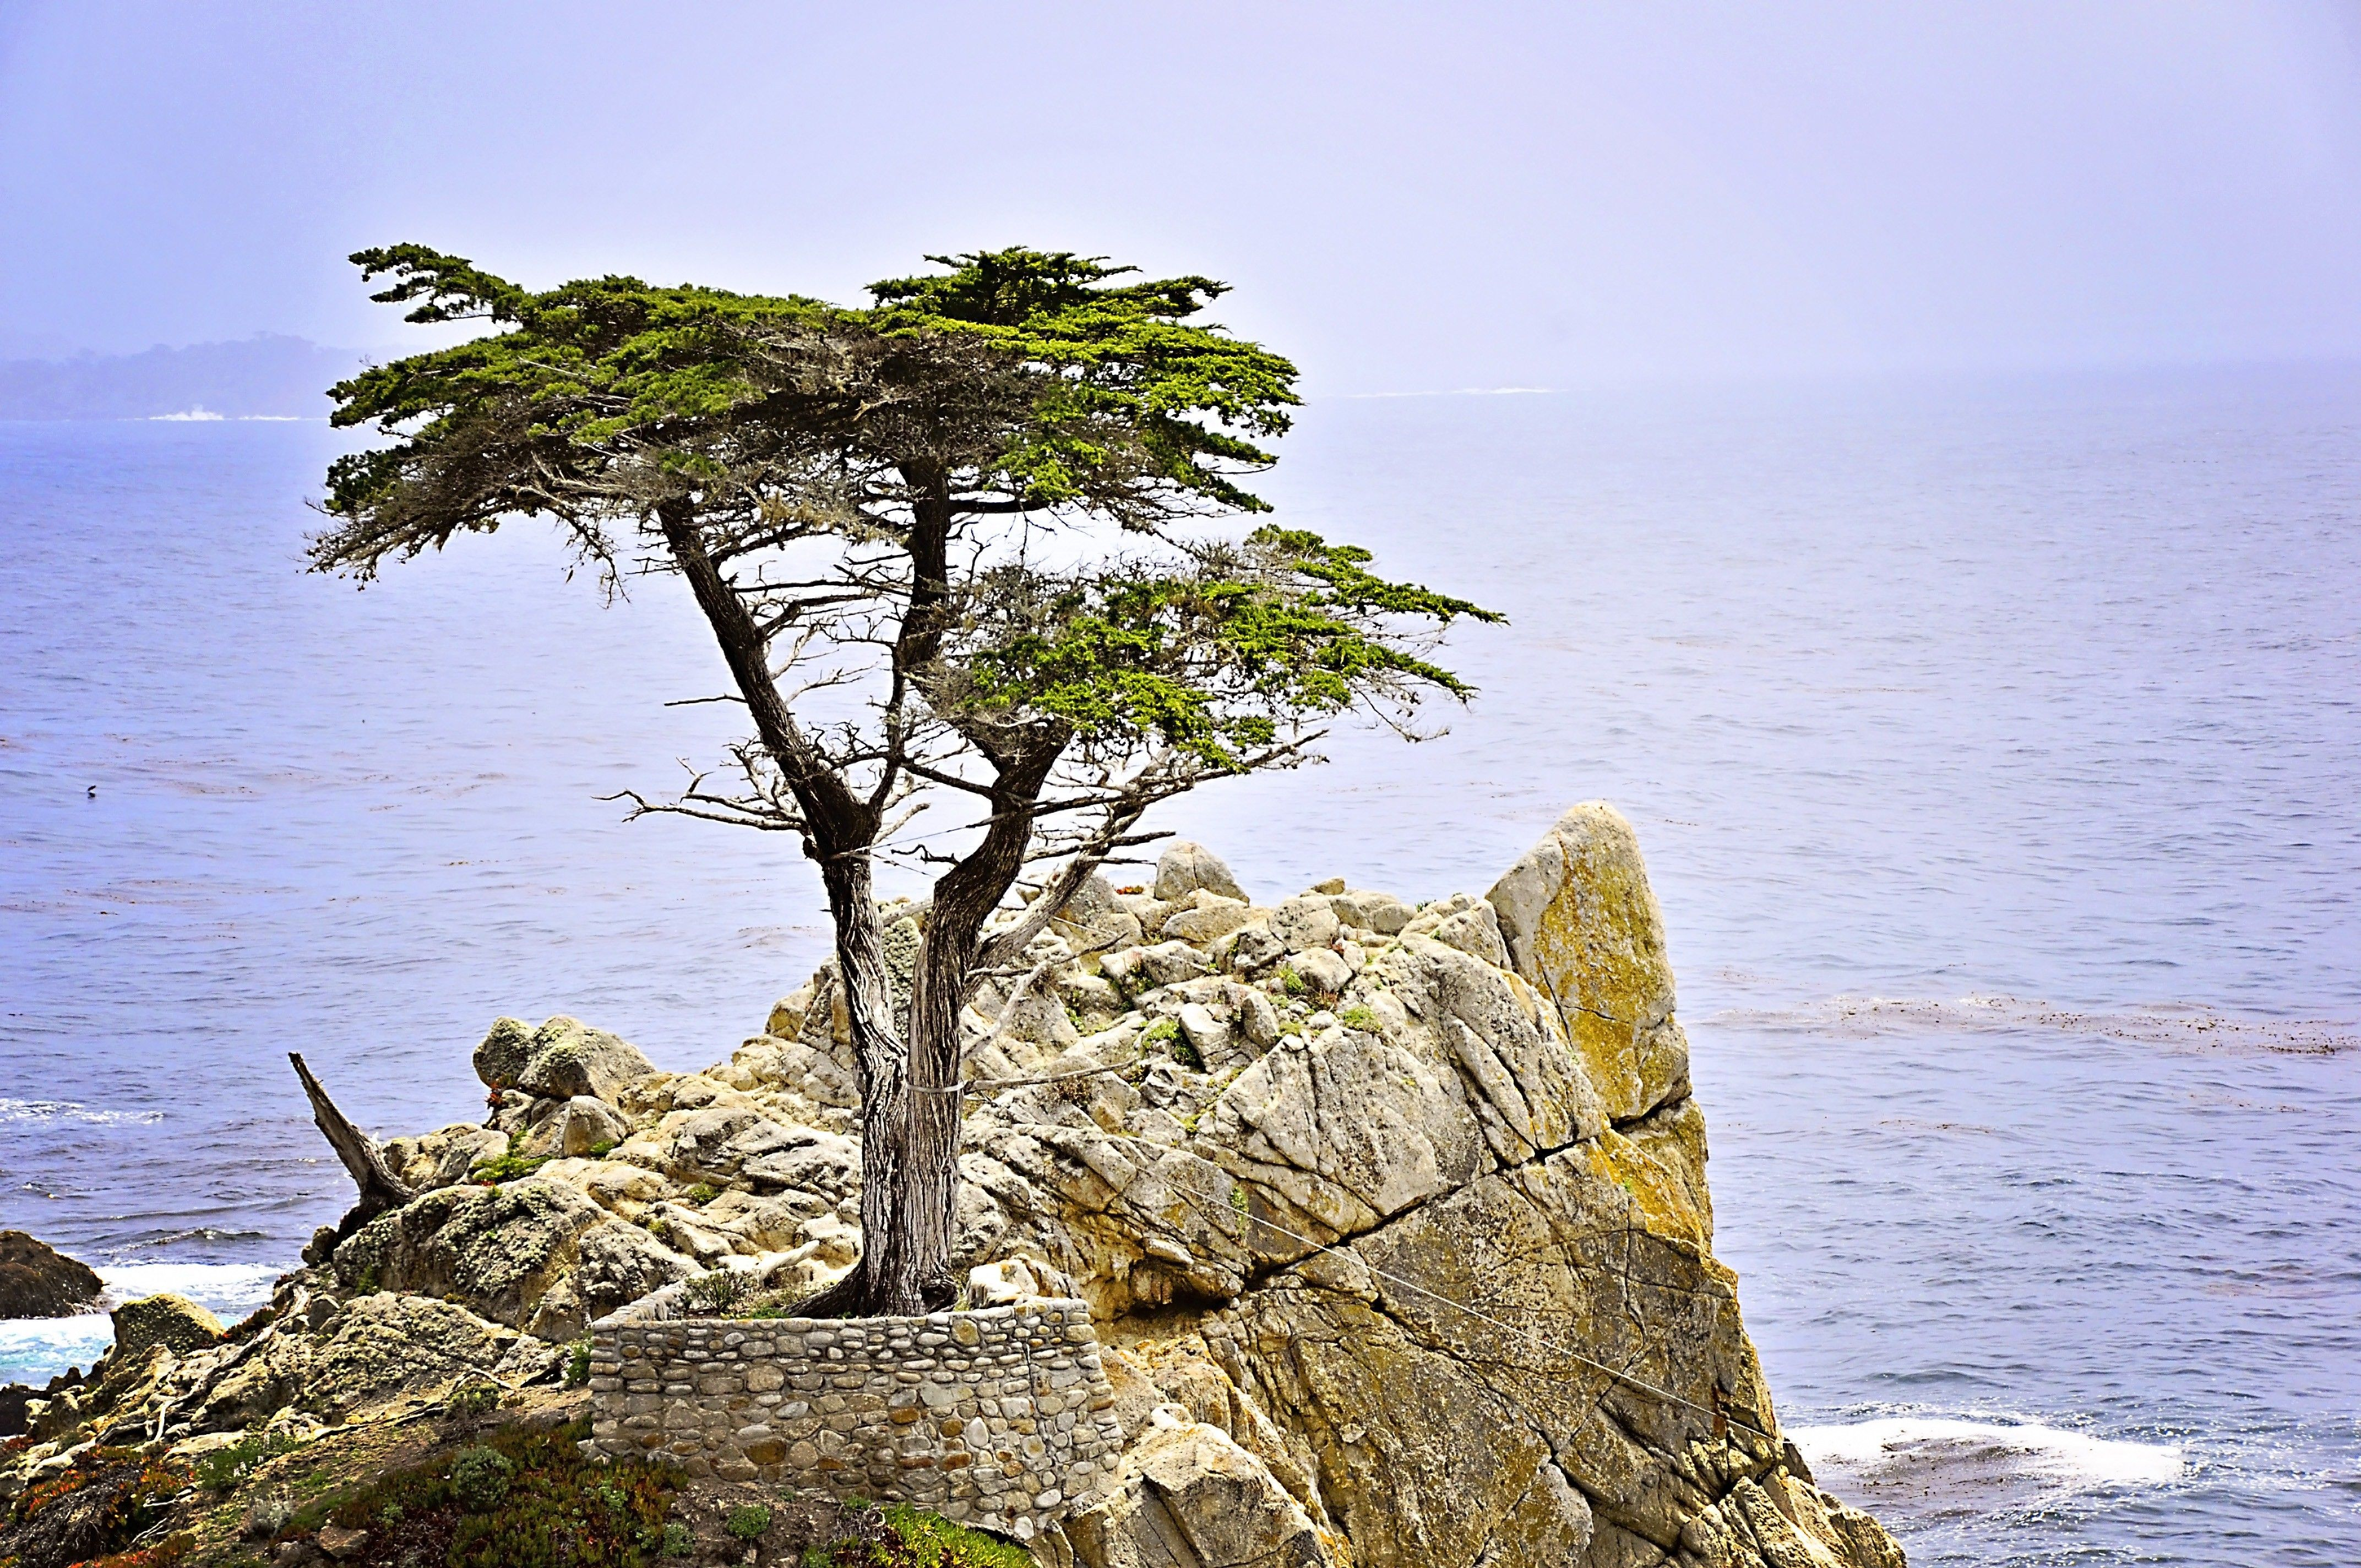 A cypress tree on a cliff.